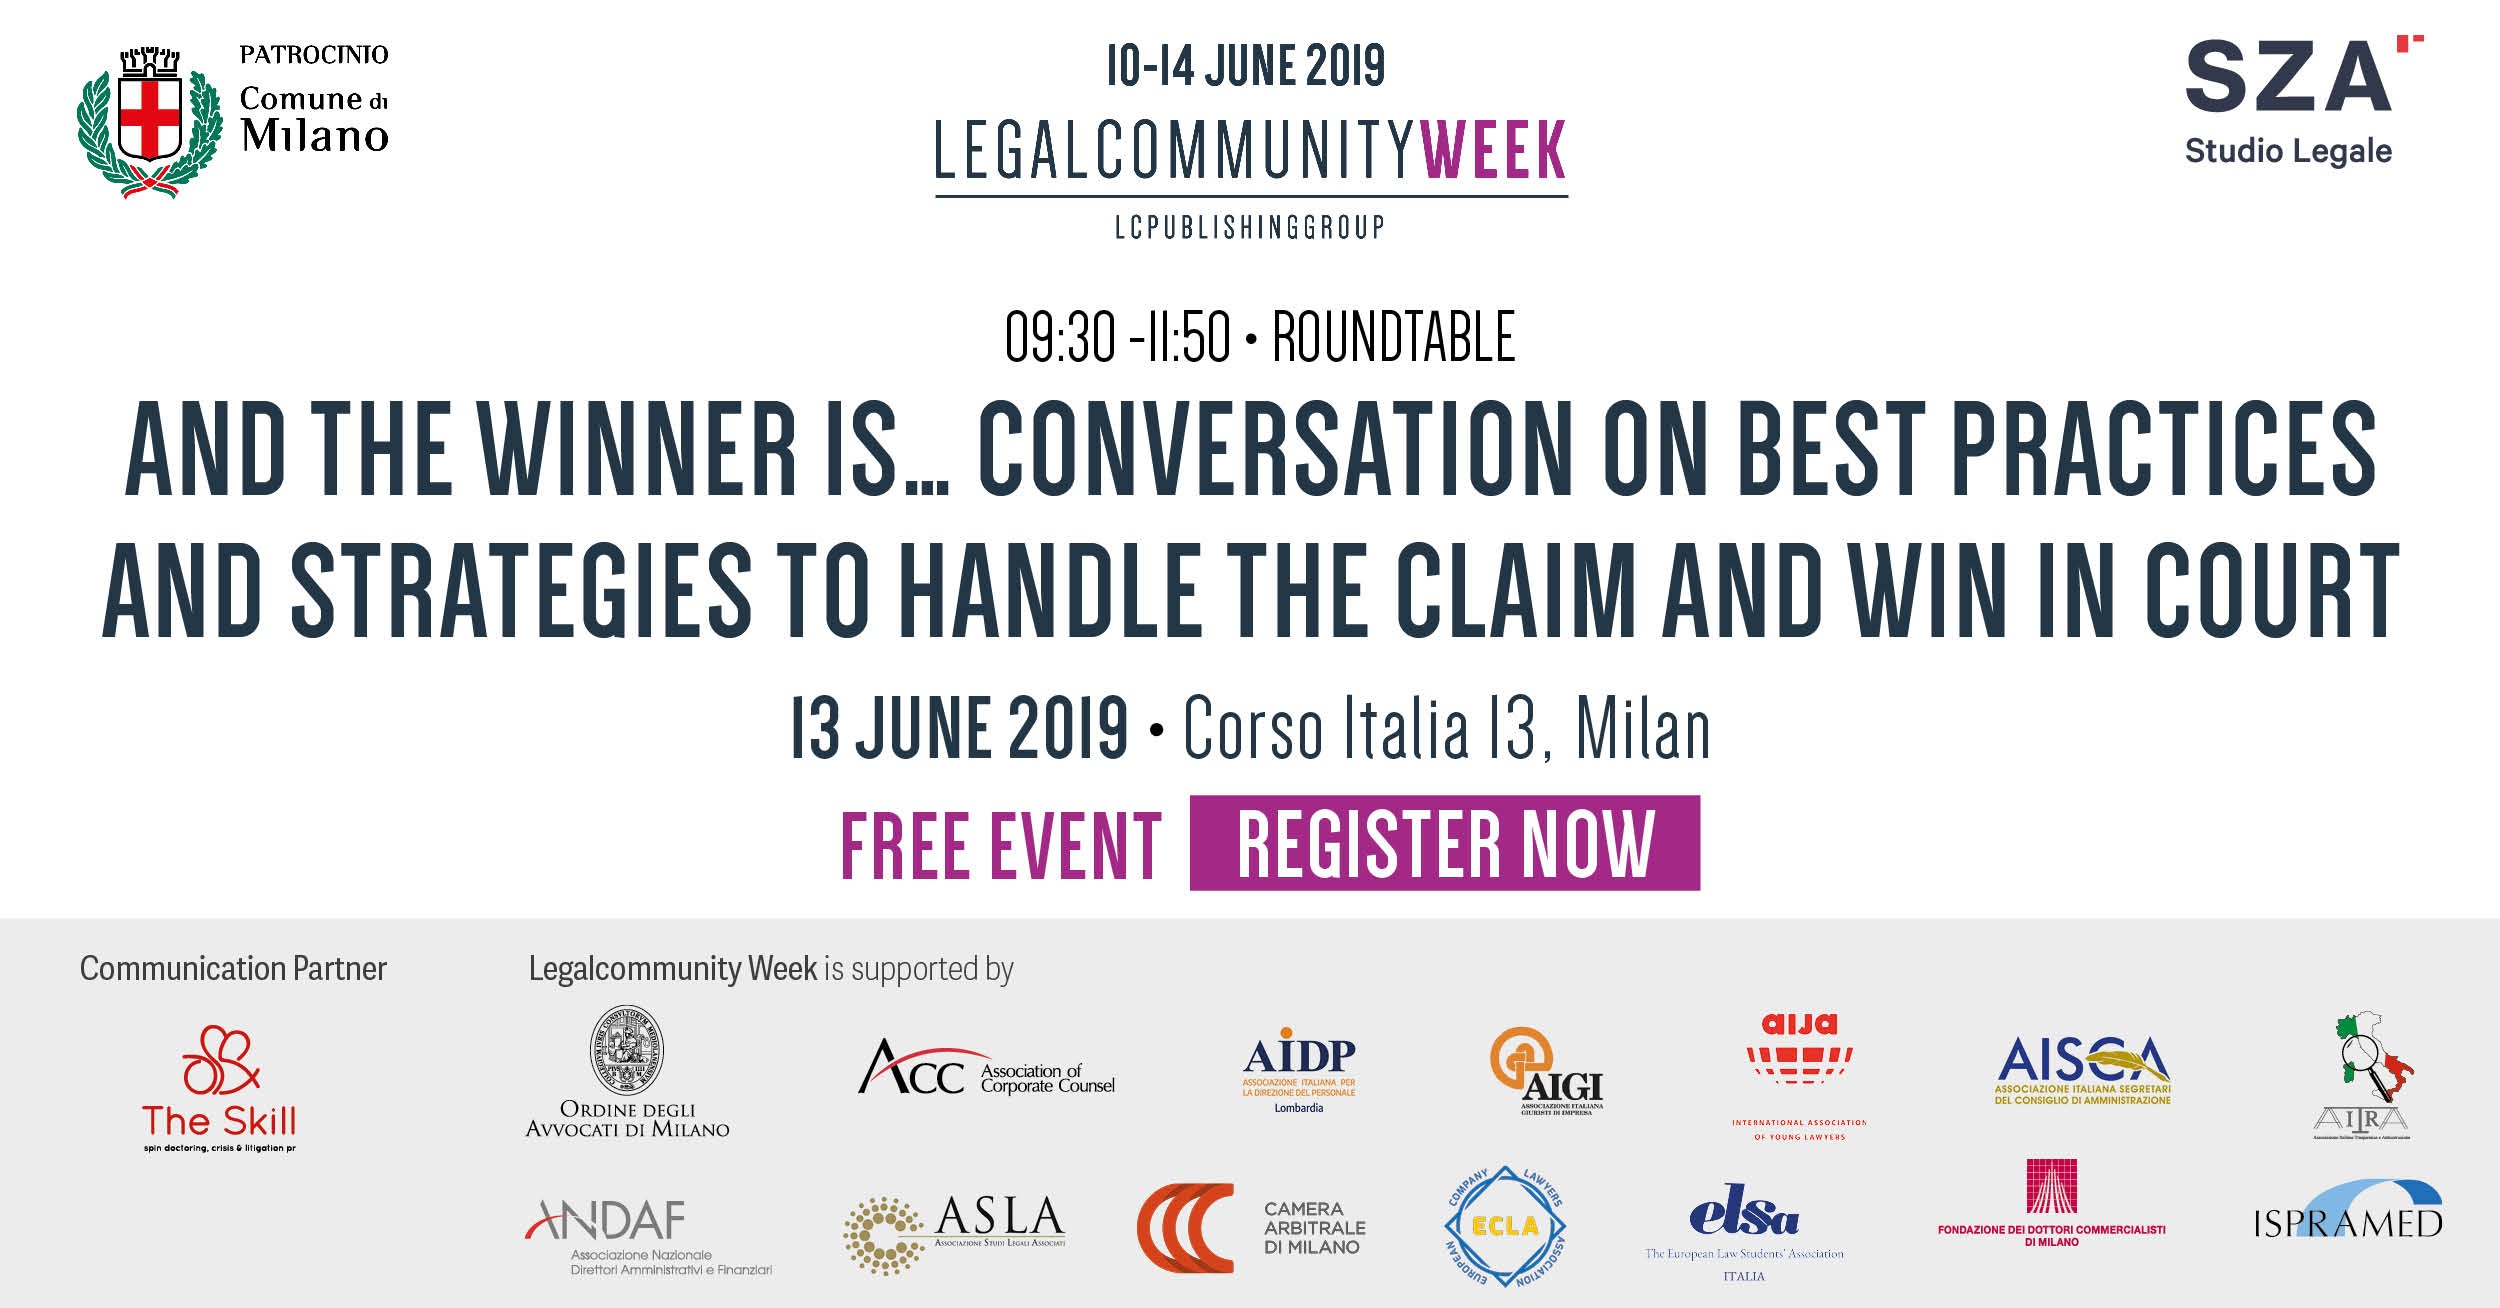 Conversation on best practices and strategies to handle the claim and win in court""